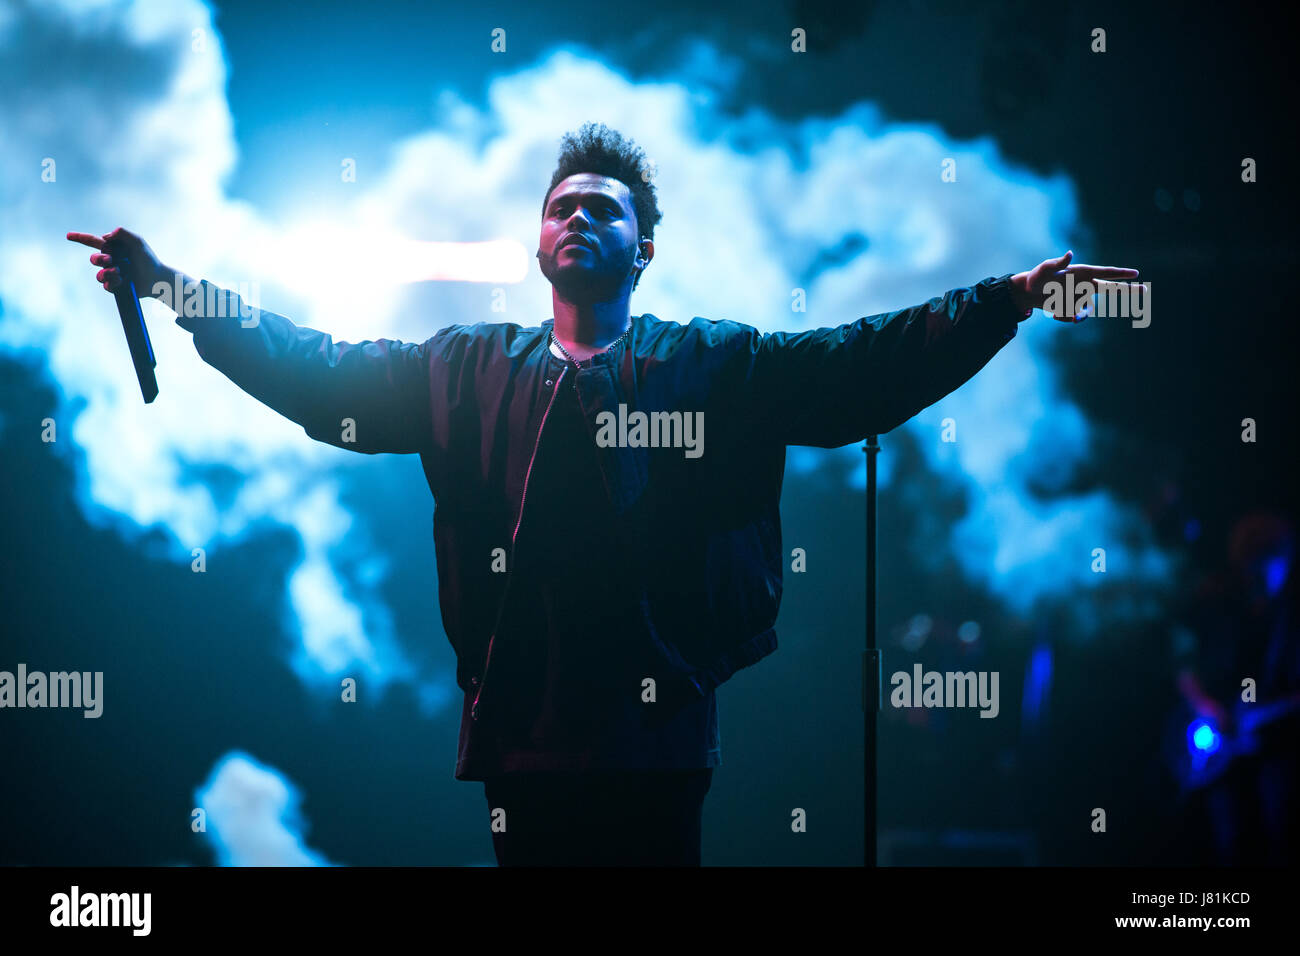 Toronto, Canada. 26th May, 2017. The Weeknd plays to a sold-out hometown crowd at The Air Canada Centre on his Starboy: Legend Of The Fall Tour. Credit: Bobby Singh/Alamy Live News. Stock Photo